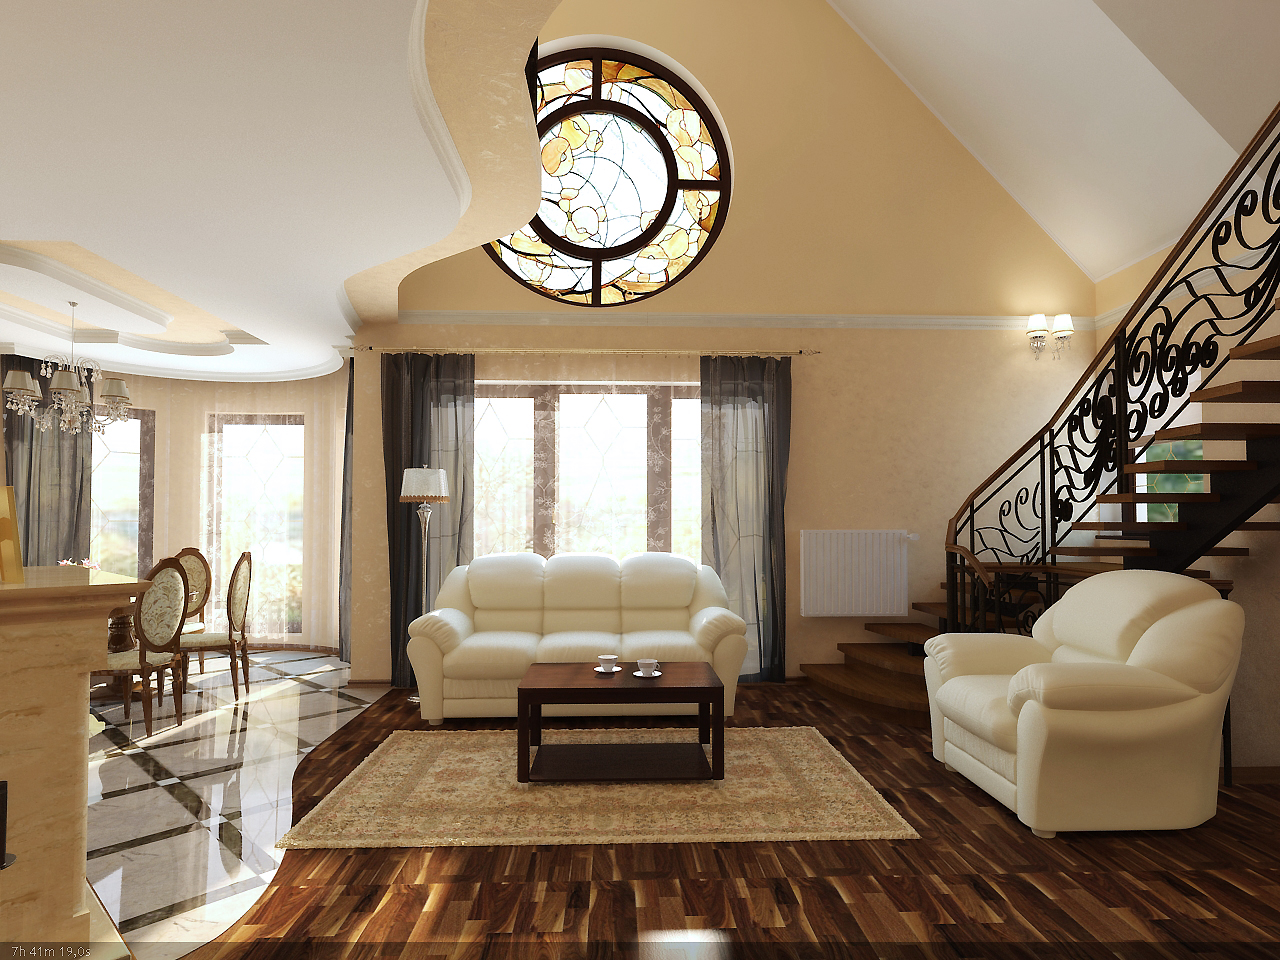 classic home interior - Home Design And Decorating